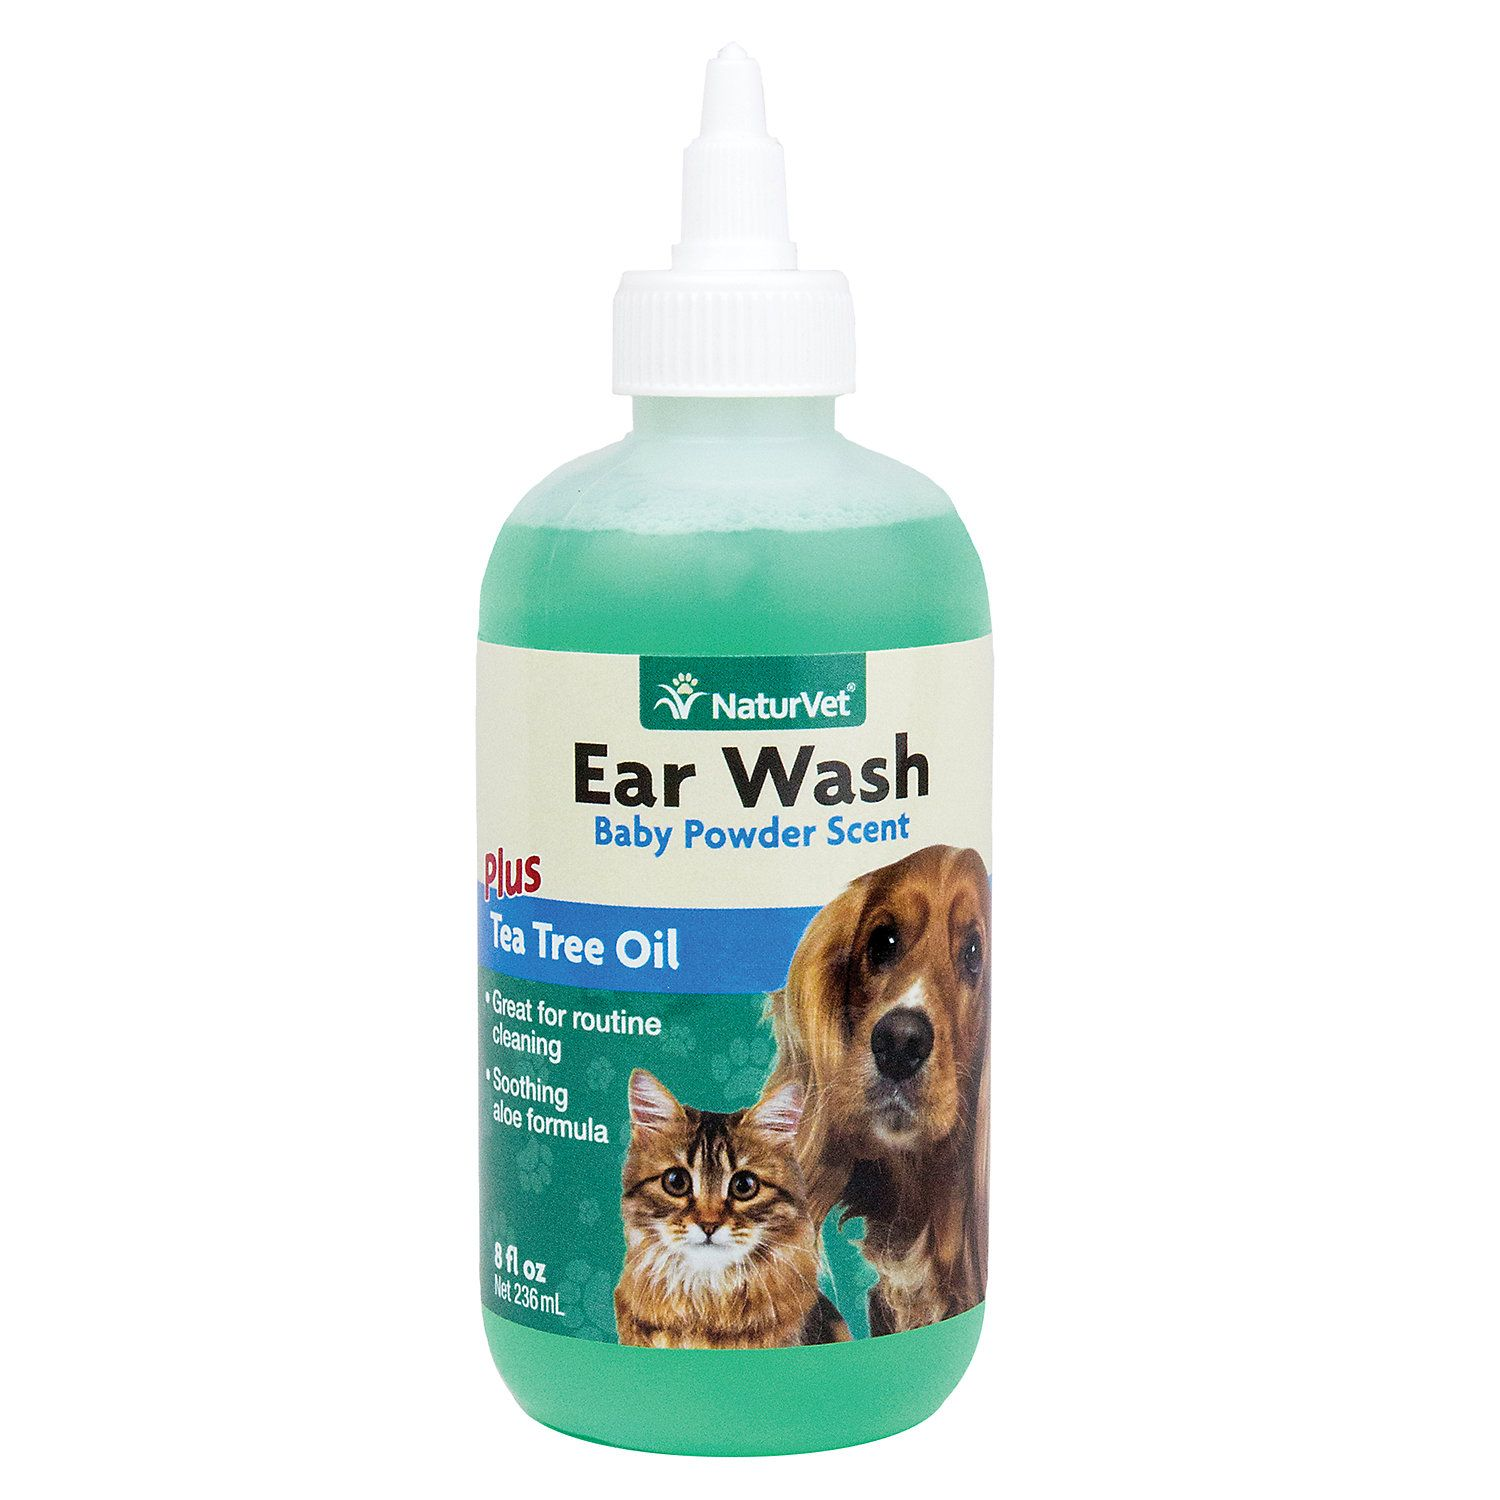 NaturVet Ear Wash with Tea Tree Oil for Pets Dog ear